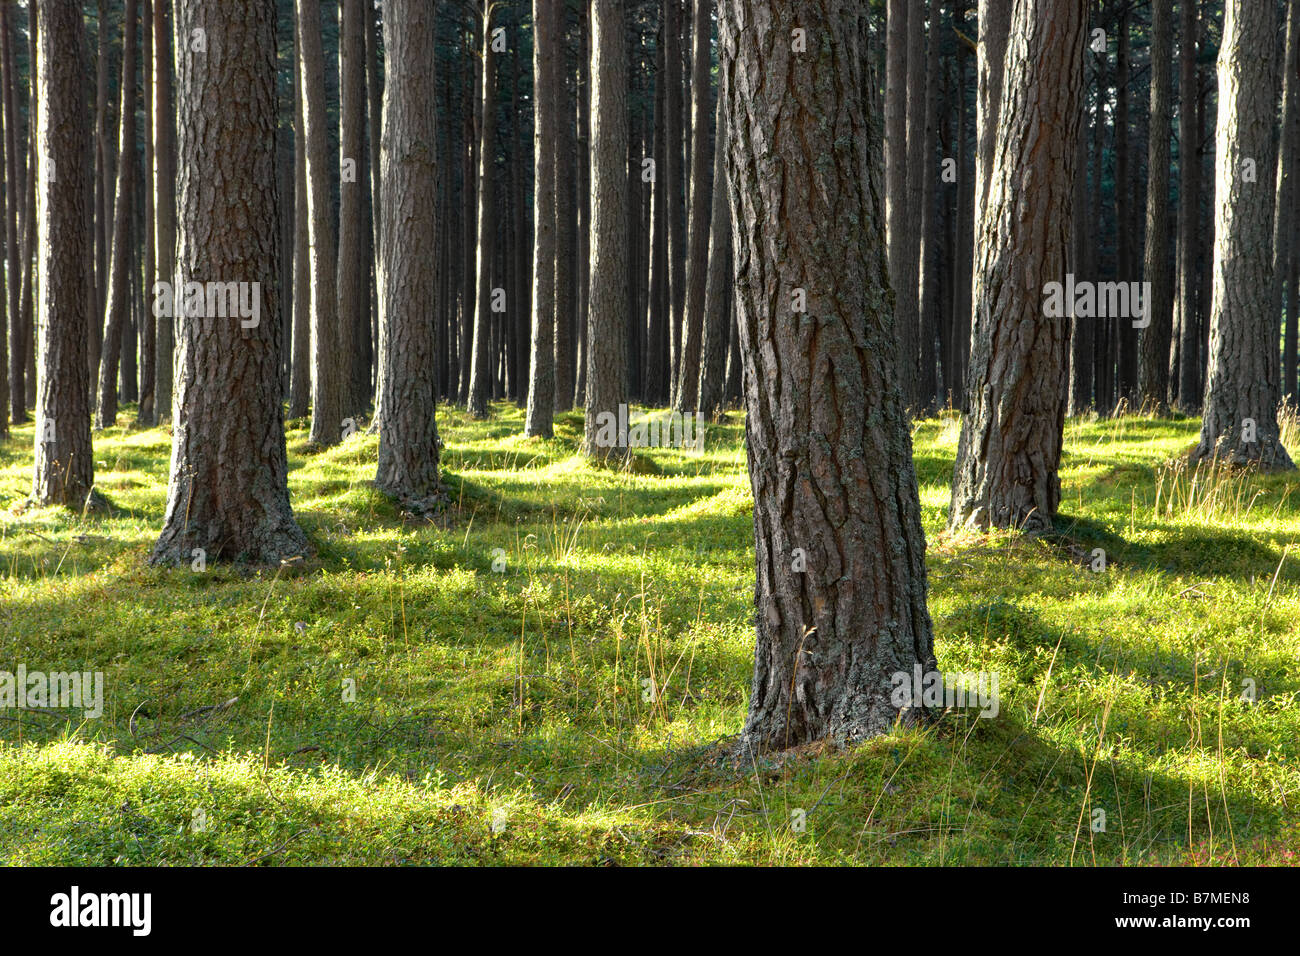 Patches of sunlight hitting pine forest tree trunks green forest floor Scotland - Stock Image